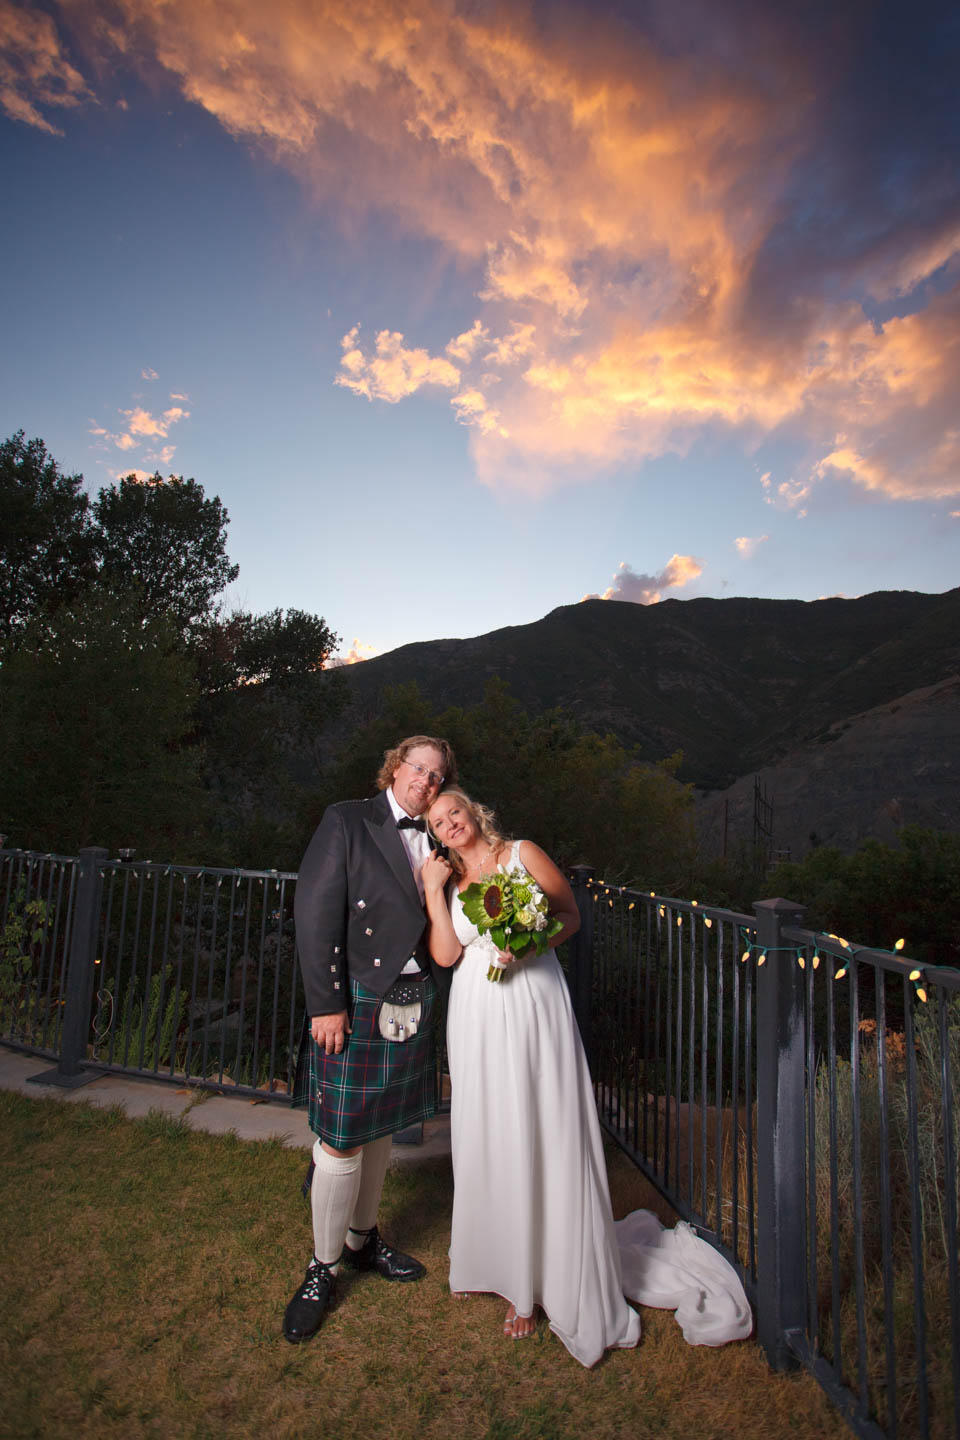 Sunset over the formal wedding portraits